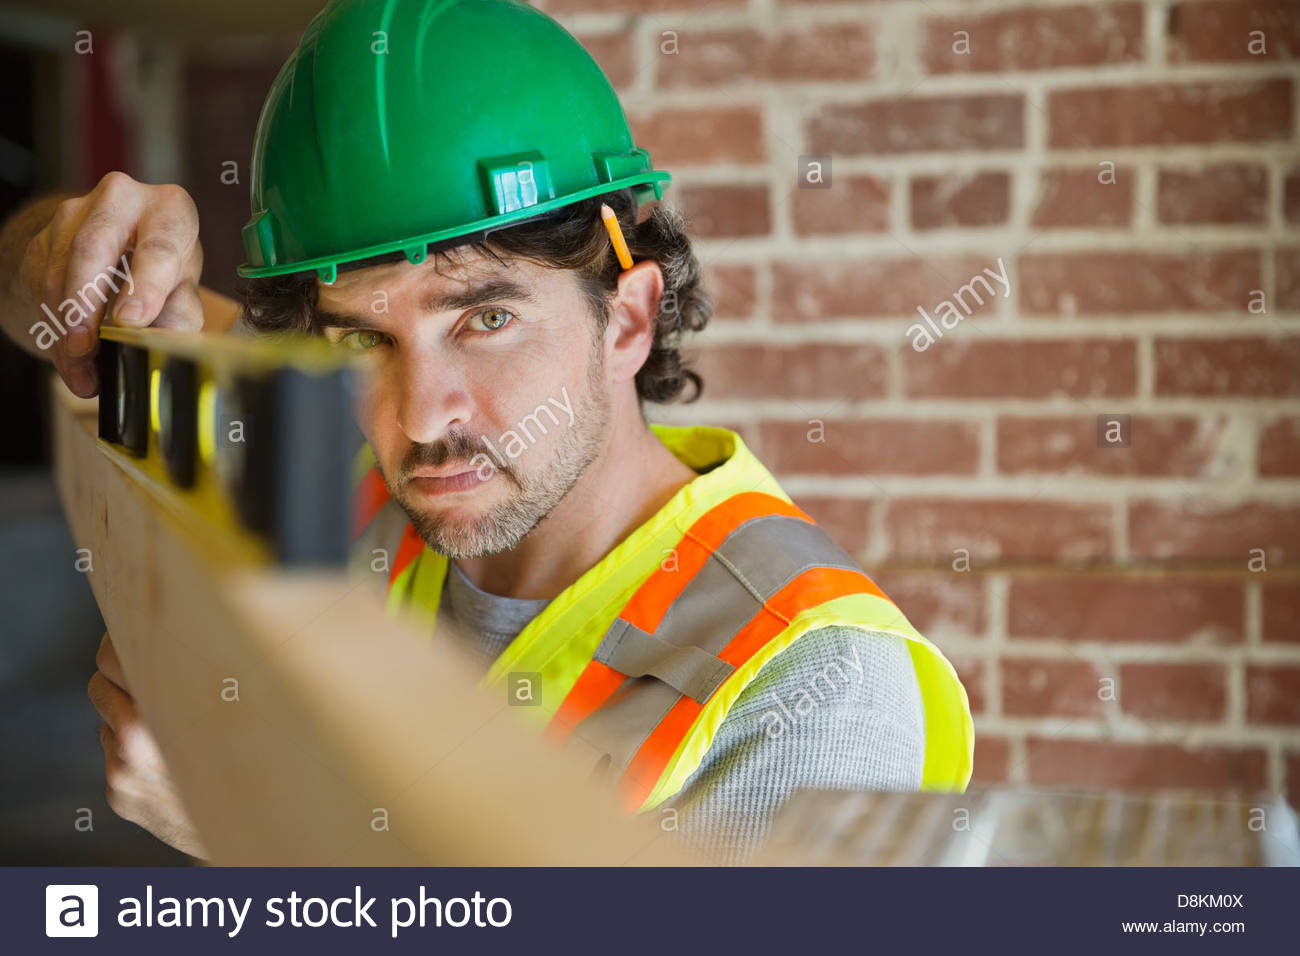 Tradesman leveling wooden plank at construction site Stock Photo